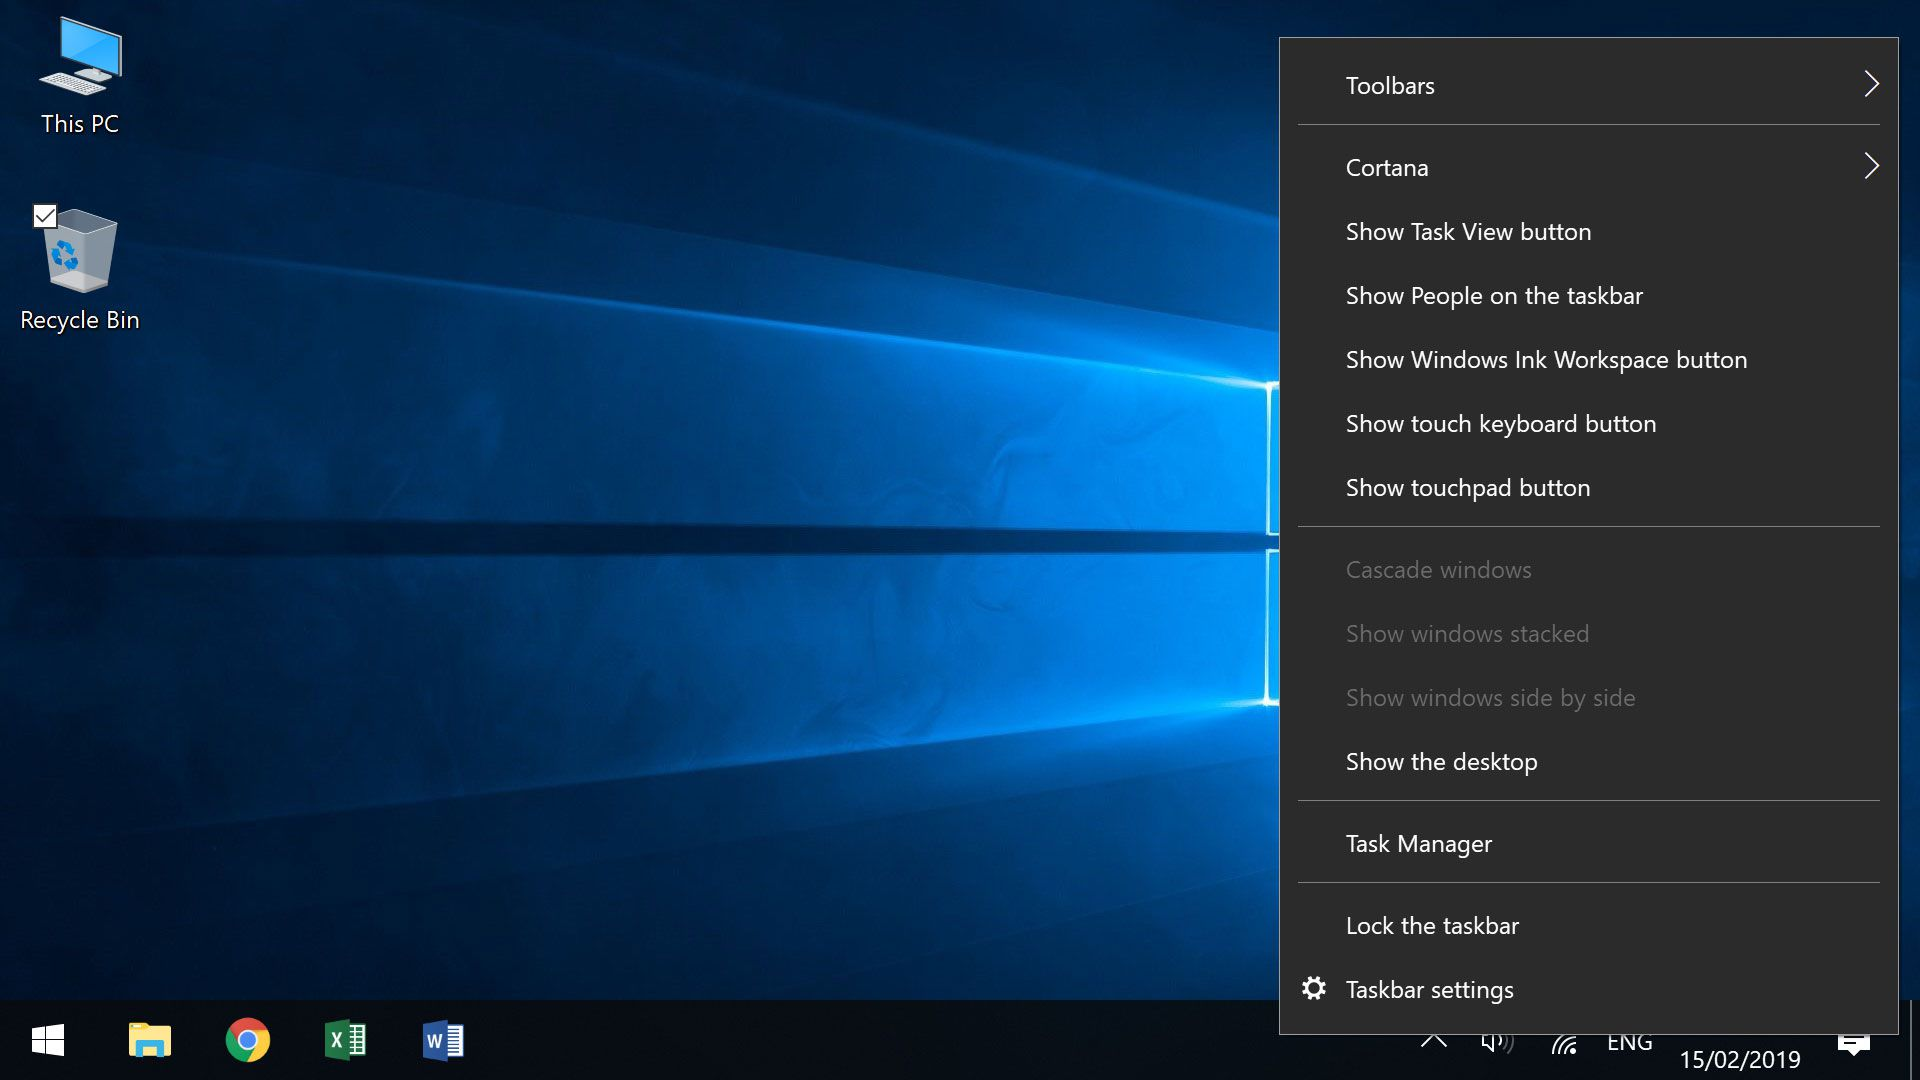 Taskbar menu used to load Taskbar settings and show a hidden WIndows Battery Icon